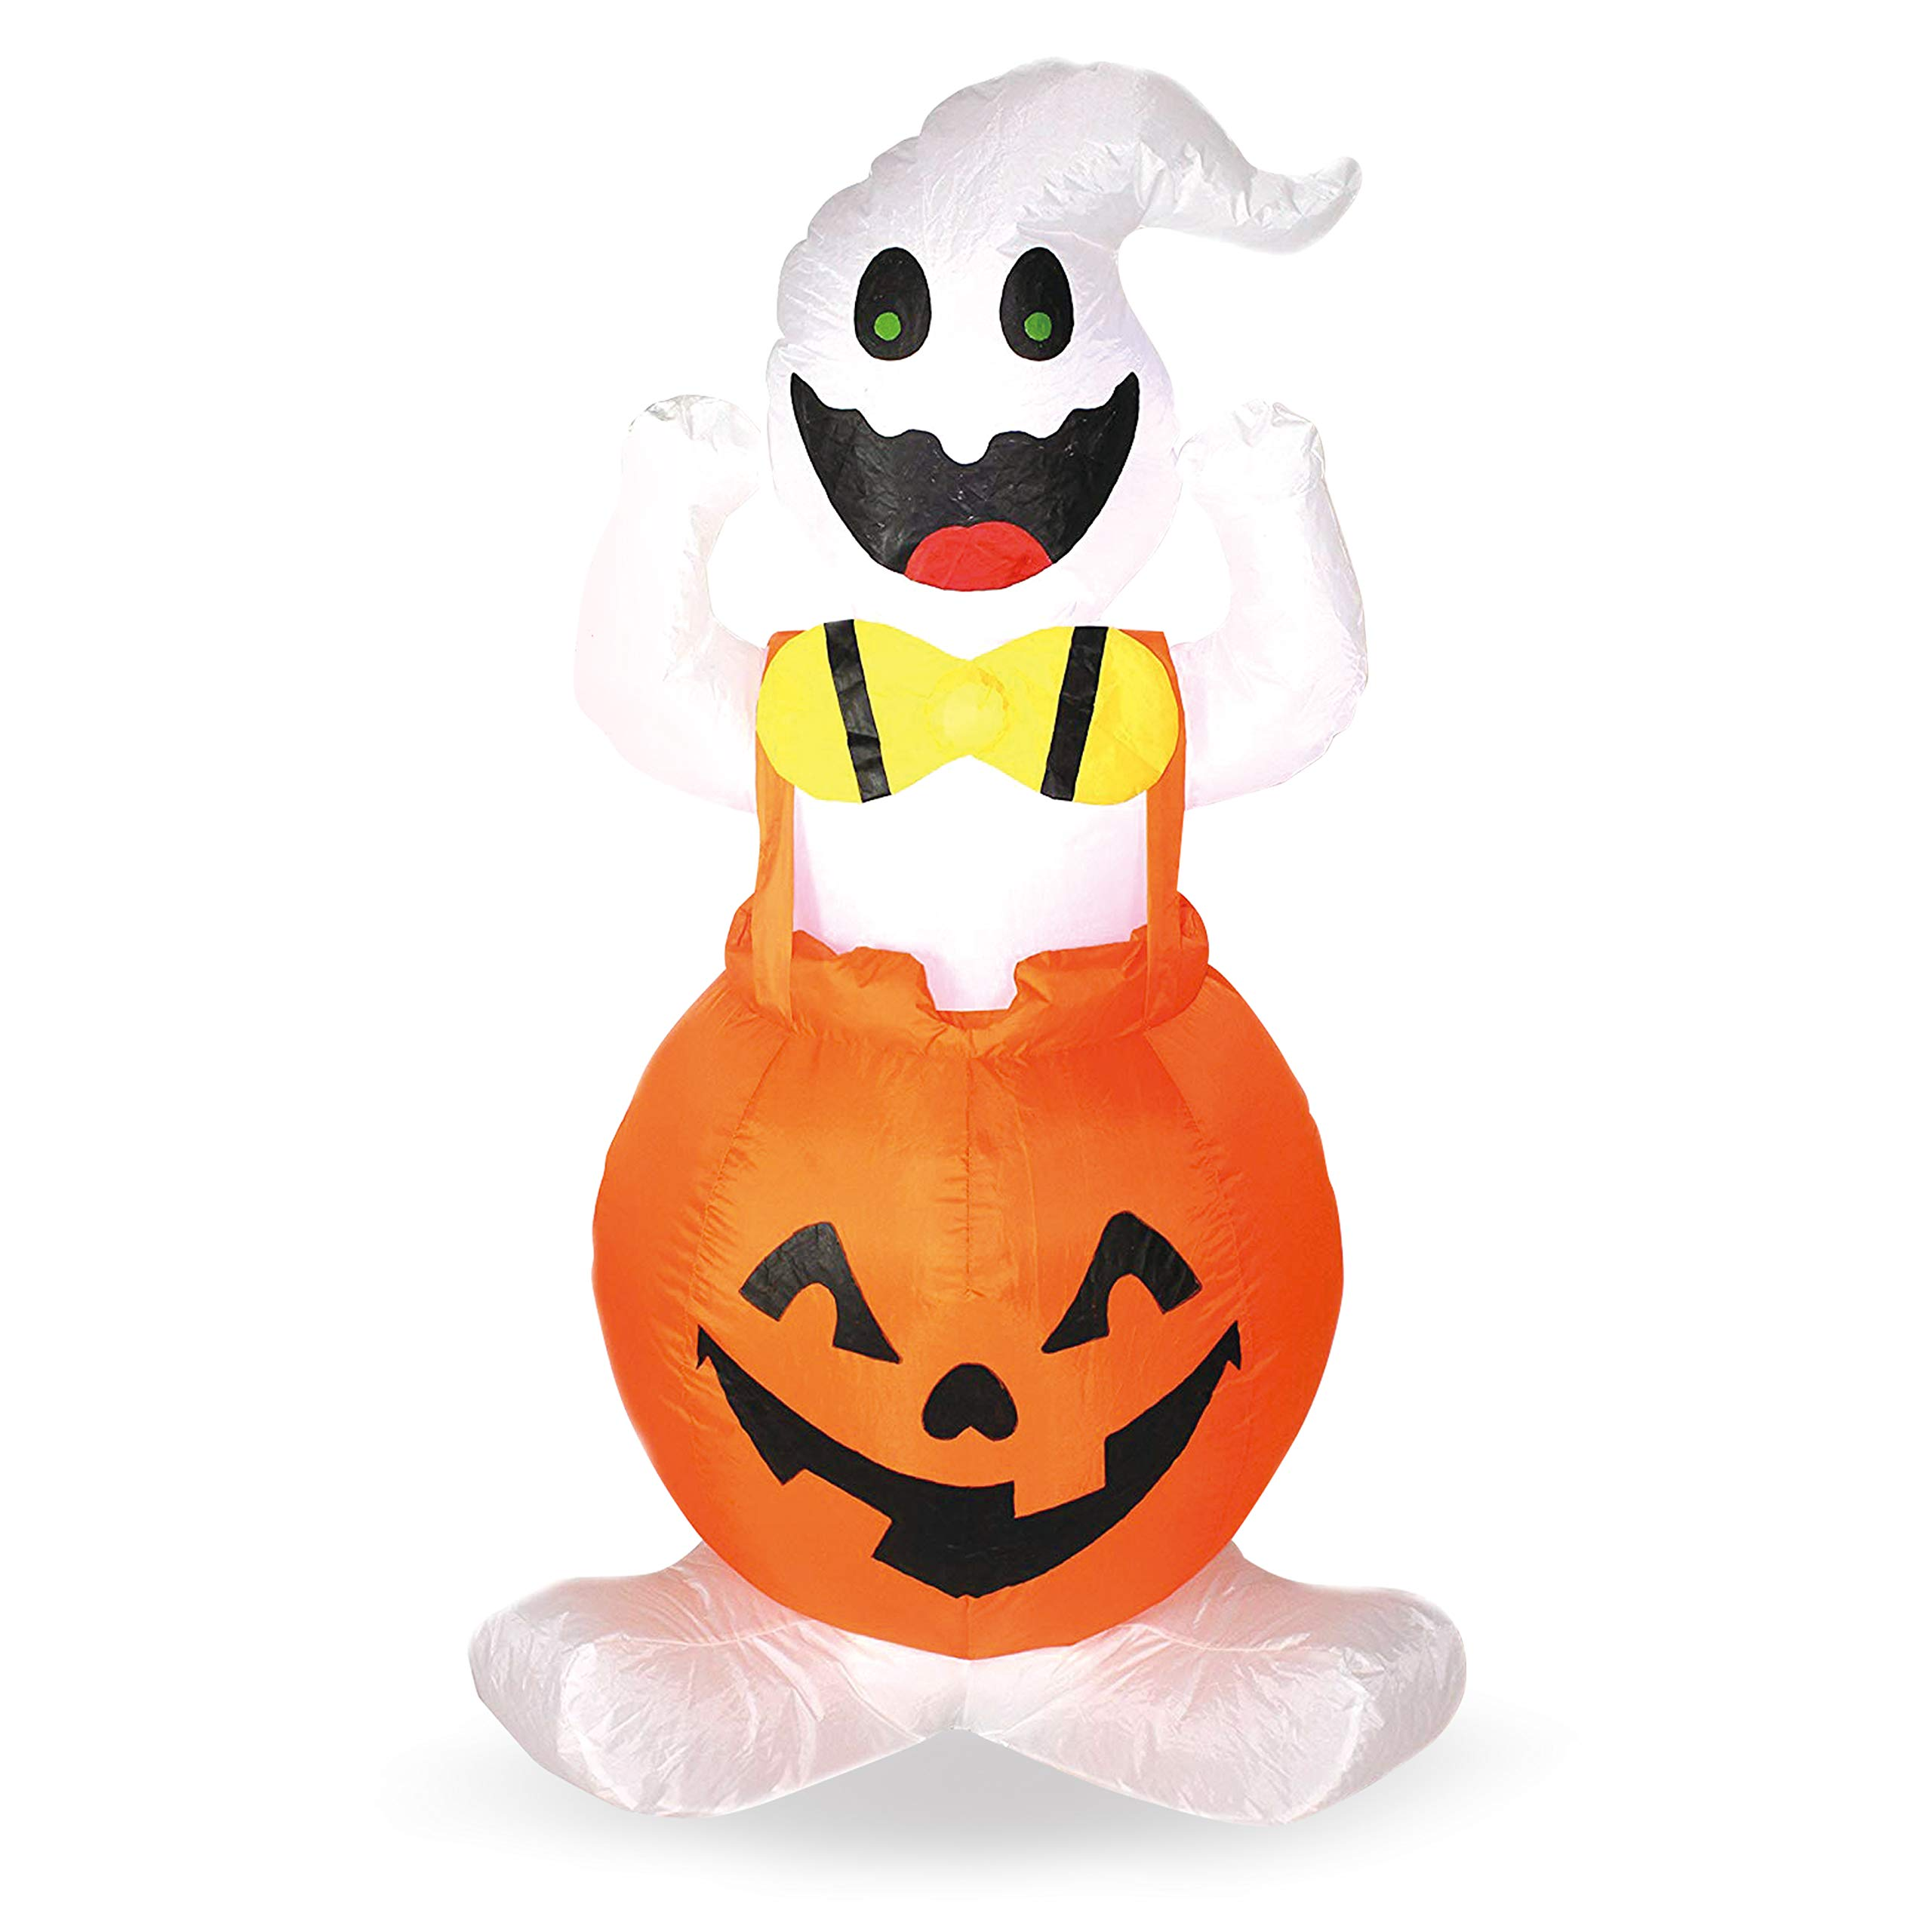 Joiedomi Halloween Blow-up Inflatable Ghost in Pumpkin Overall for Halloween Outdoor Yard Decoration (4 Foot Tall)